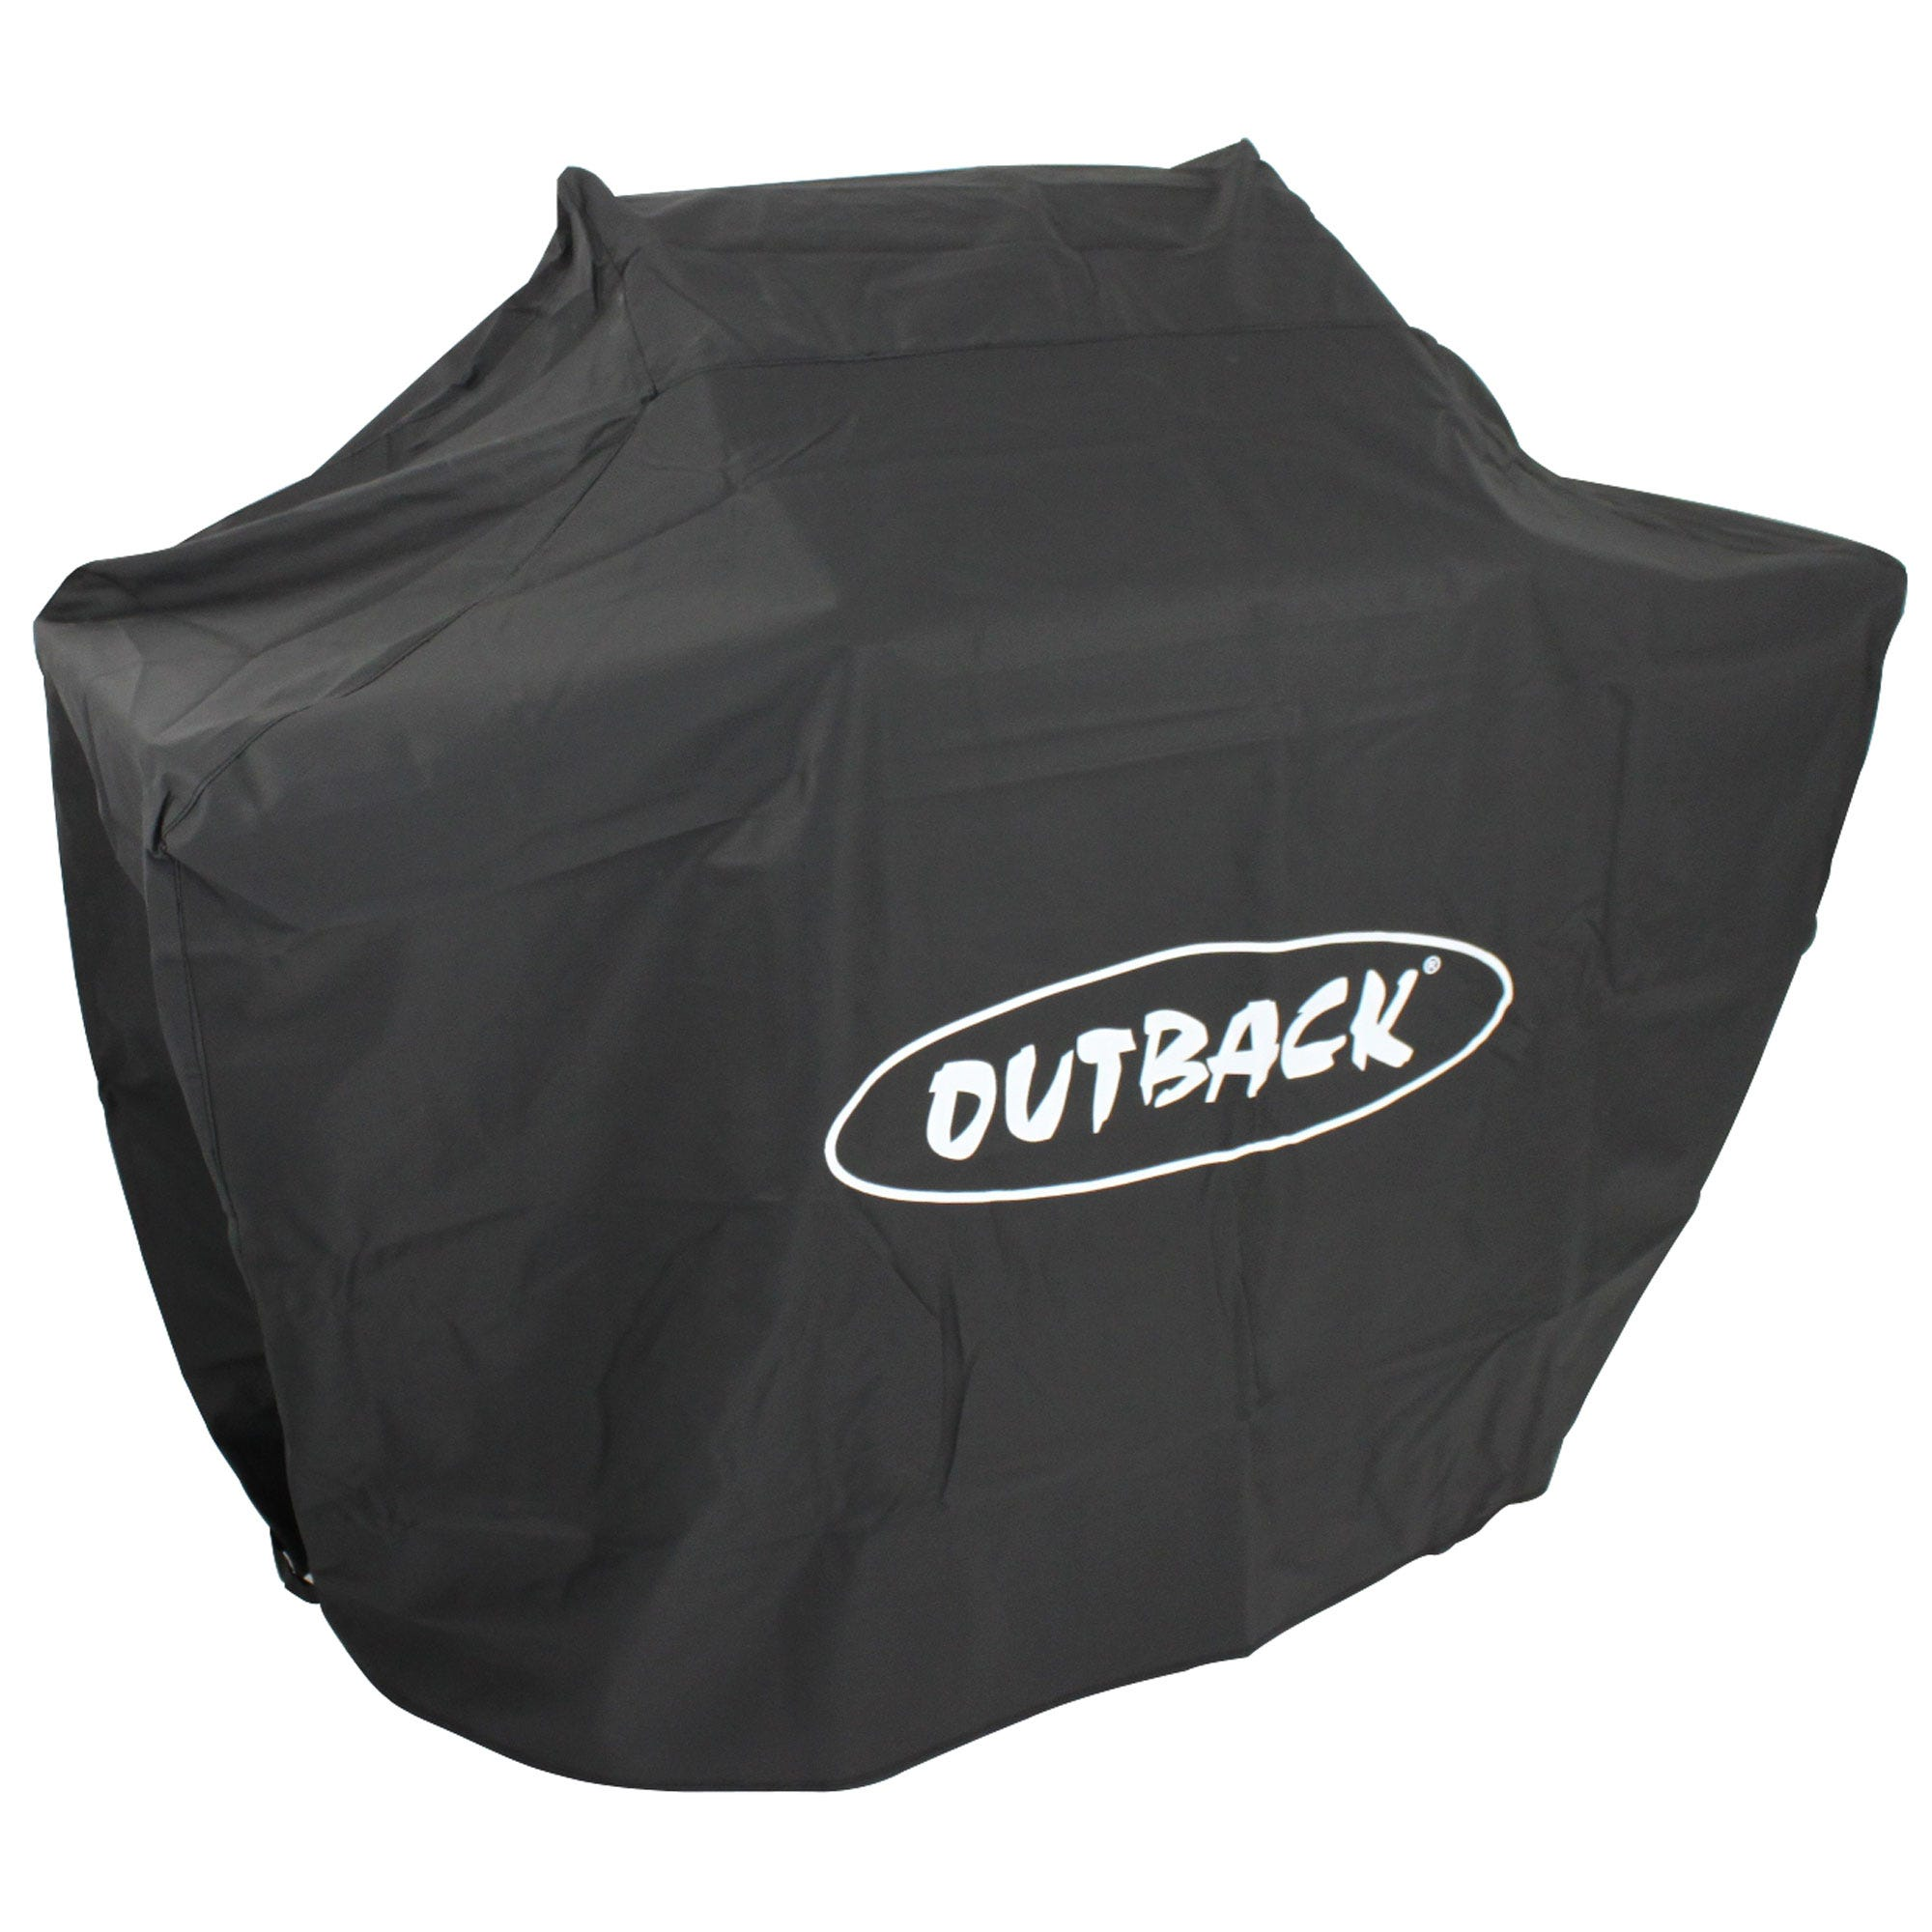 Image of Outback Meteor 4-Burner Gas Barbecue Cover